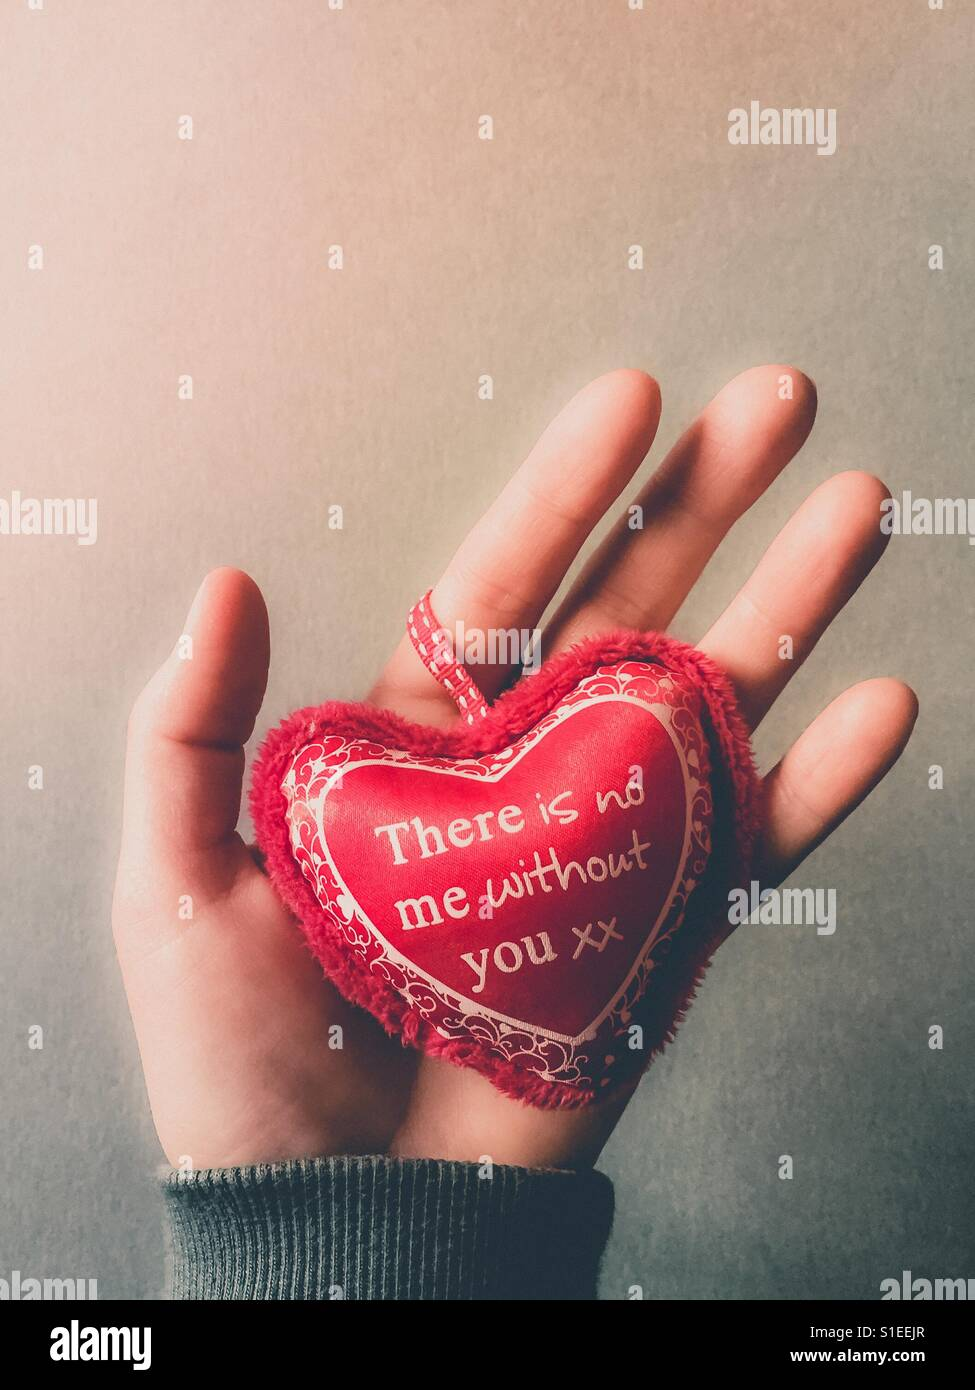 There is no me without you, Valentine's Day concept - Stock Image